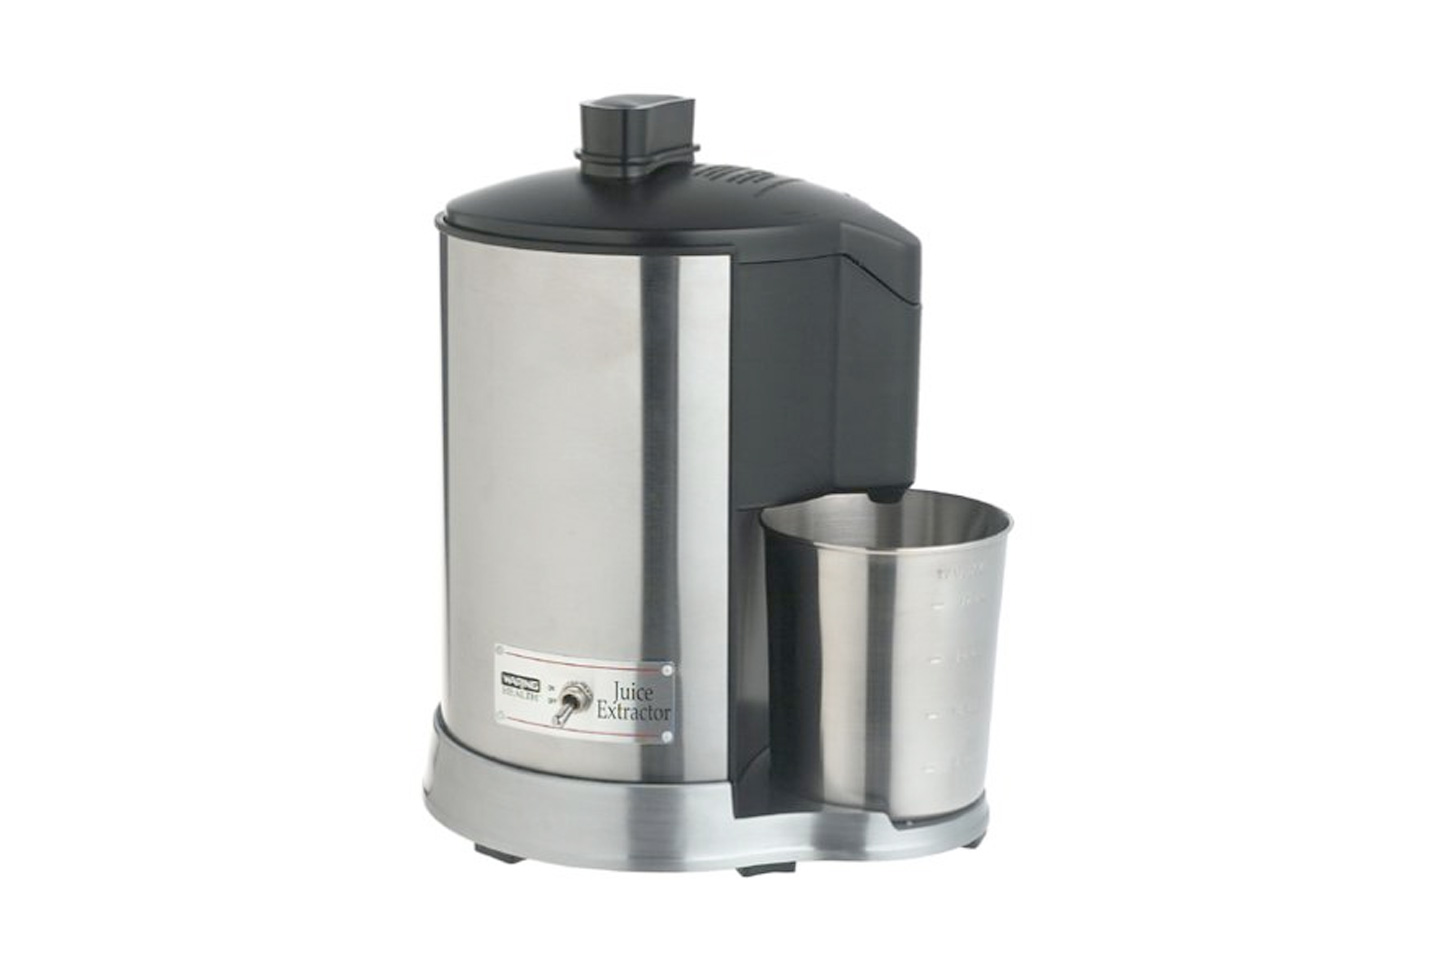 Waring Pro JEX328 Health Juice Extractor Review | HeartyBlends.co